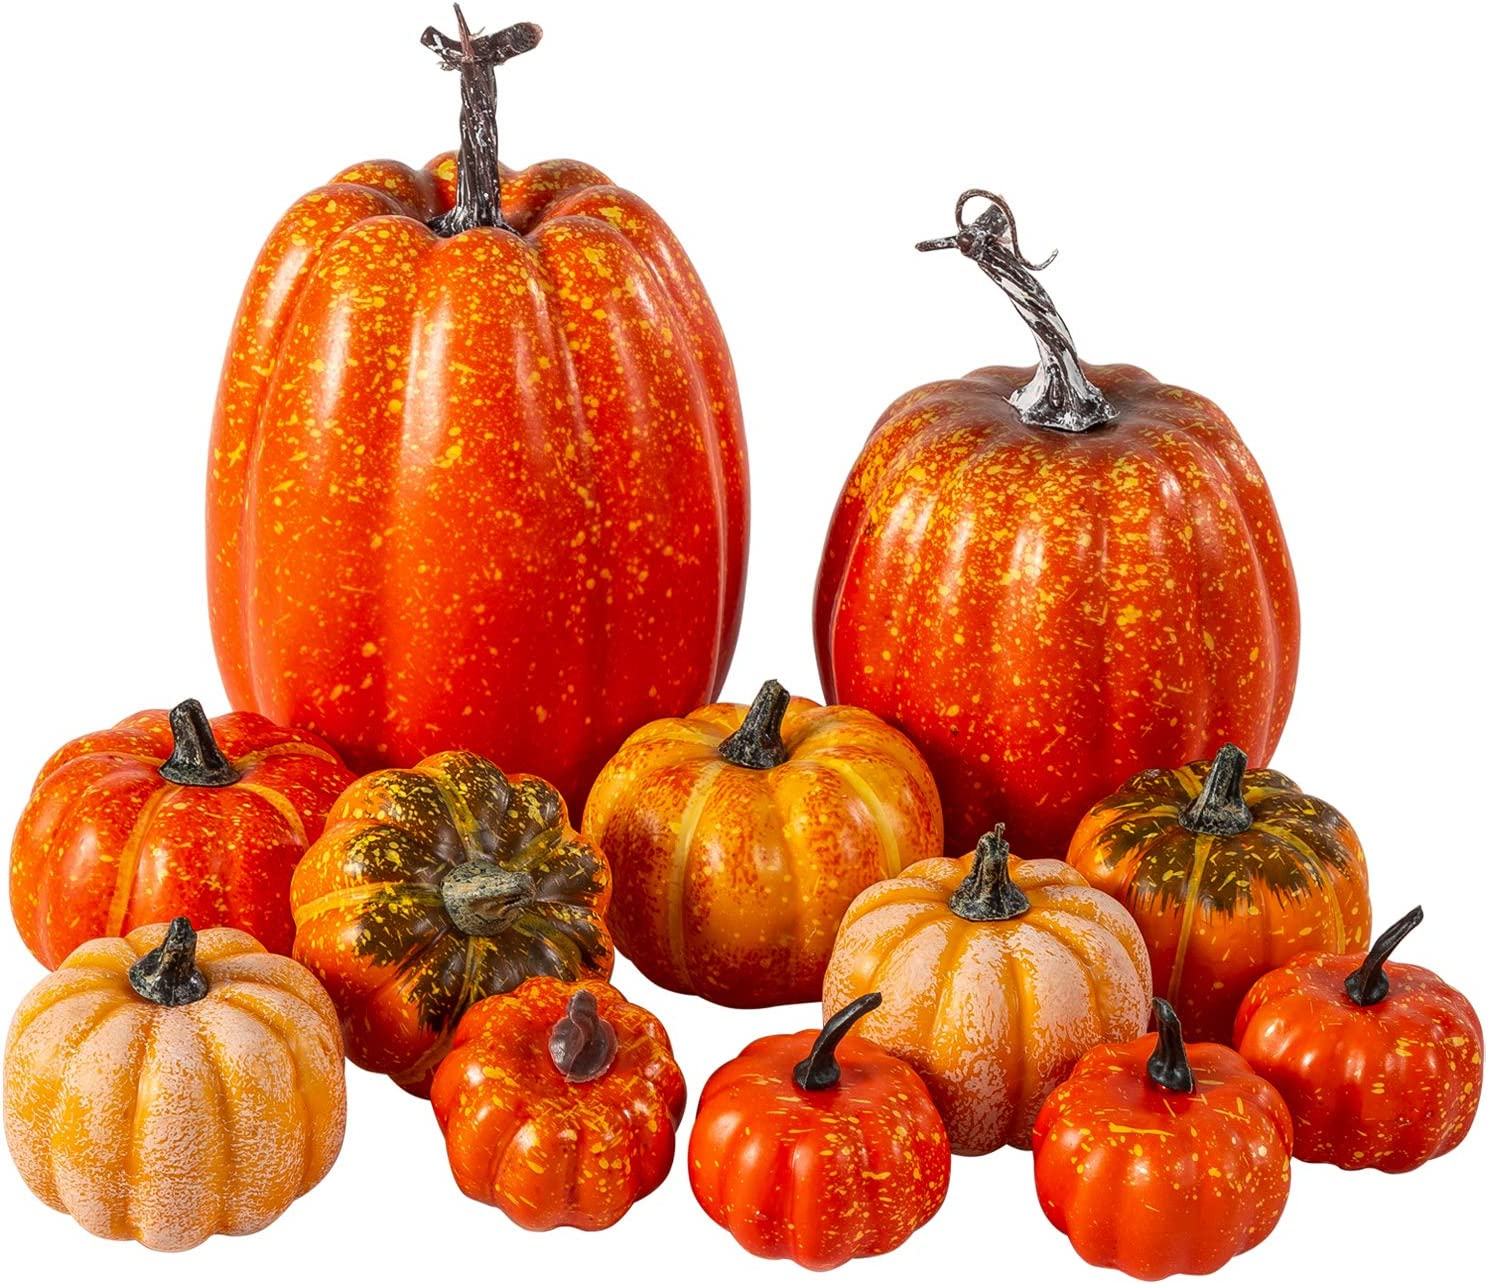 12Pcs Assorted Sizes Artificial Pumpkins Decoration Harvest Fall Orange Pumpkins Fake Foam Pumpkins for Fall Autumn Decor Thanksgiving Halloween Decorations